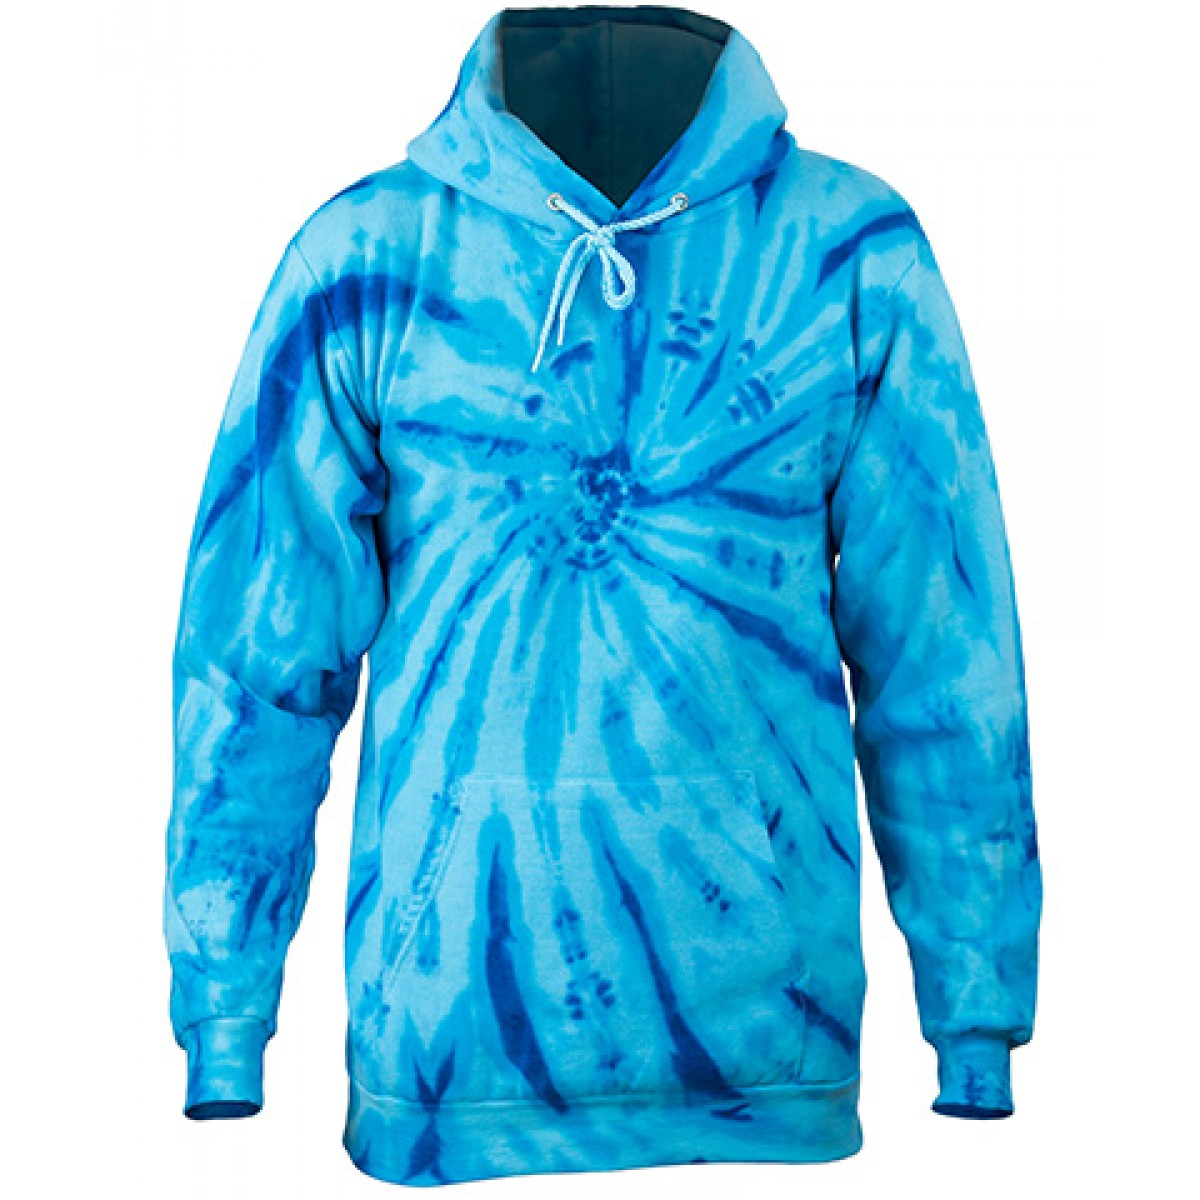 Tie-Dye Pullover Hooded Sweatshirt-Tropic Blue-YM